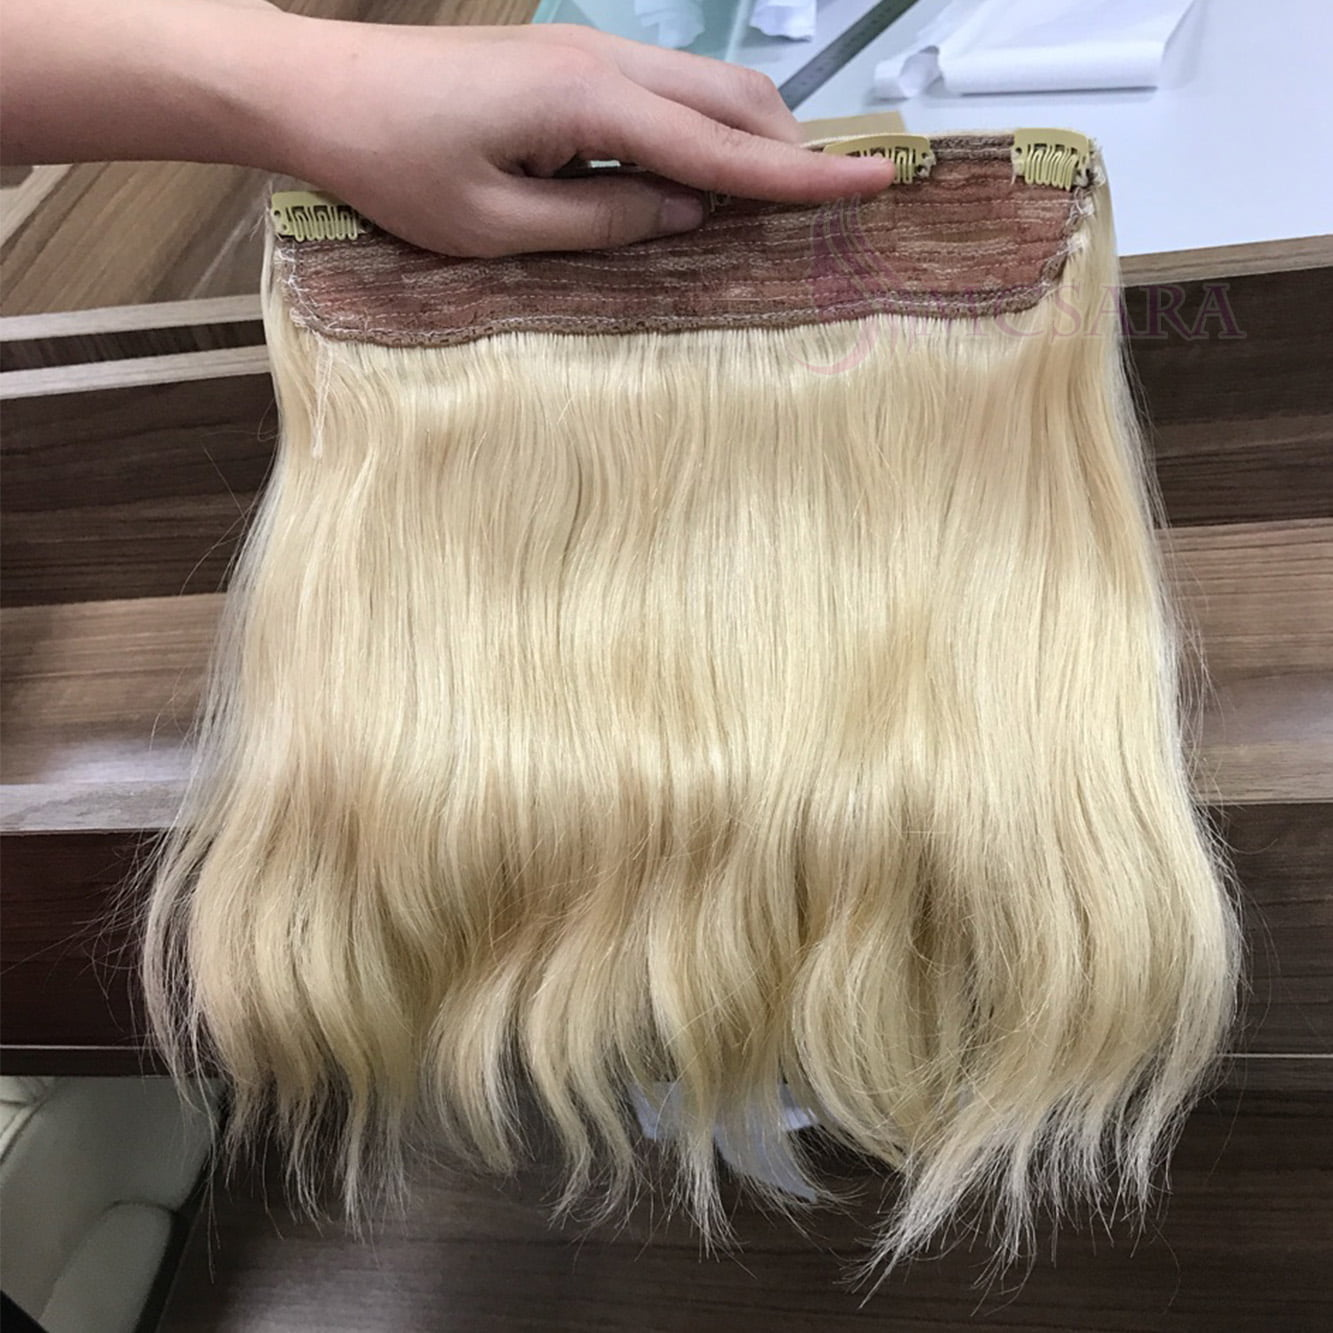 14 inch Clip in hair extensions blonde color